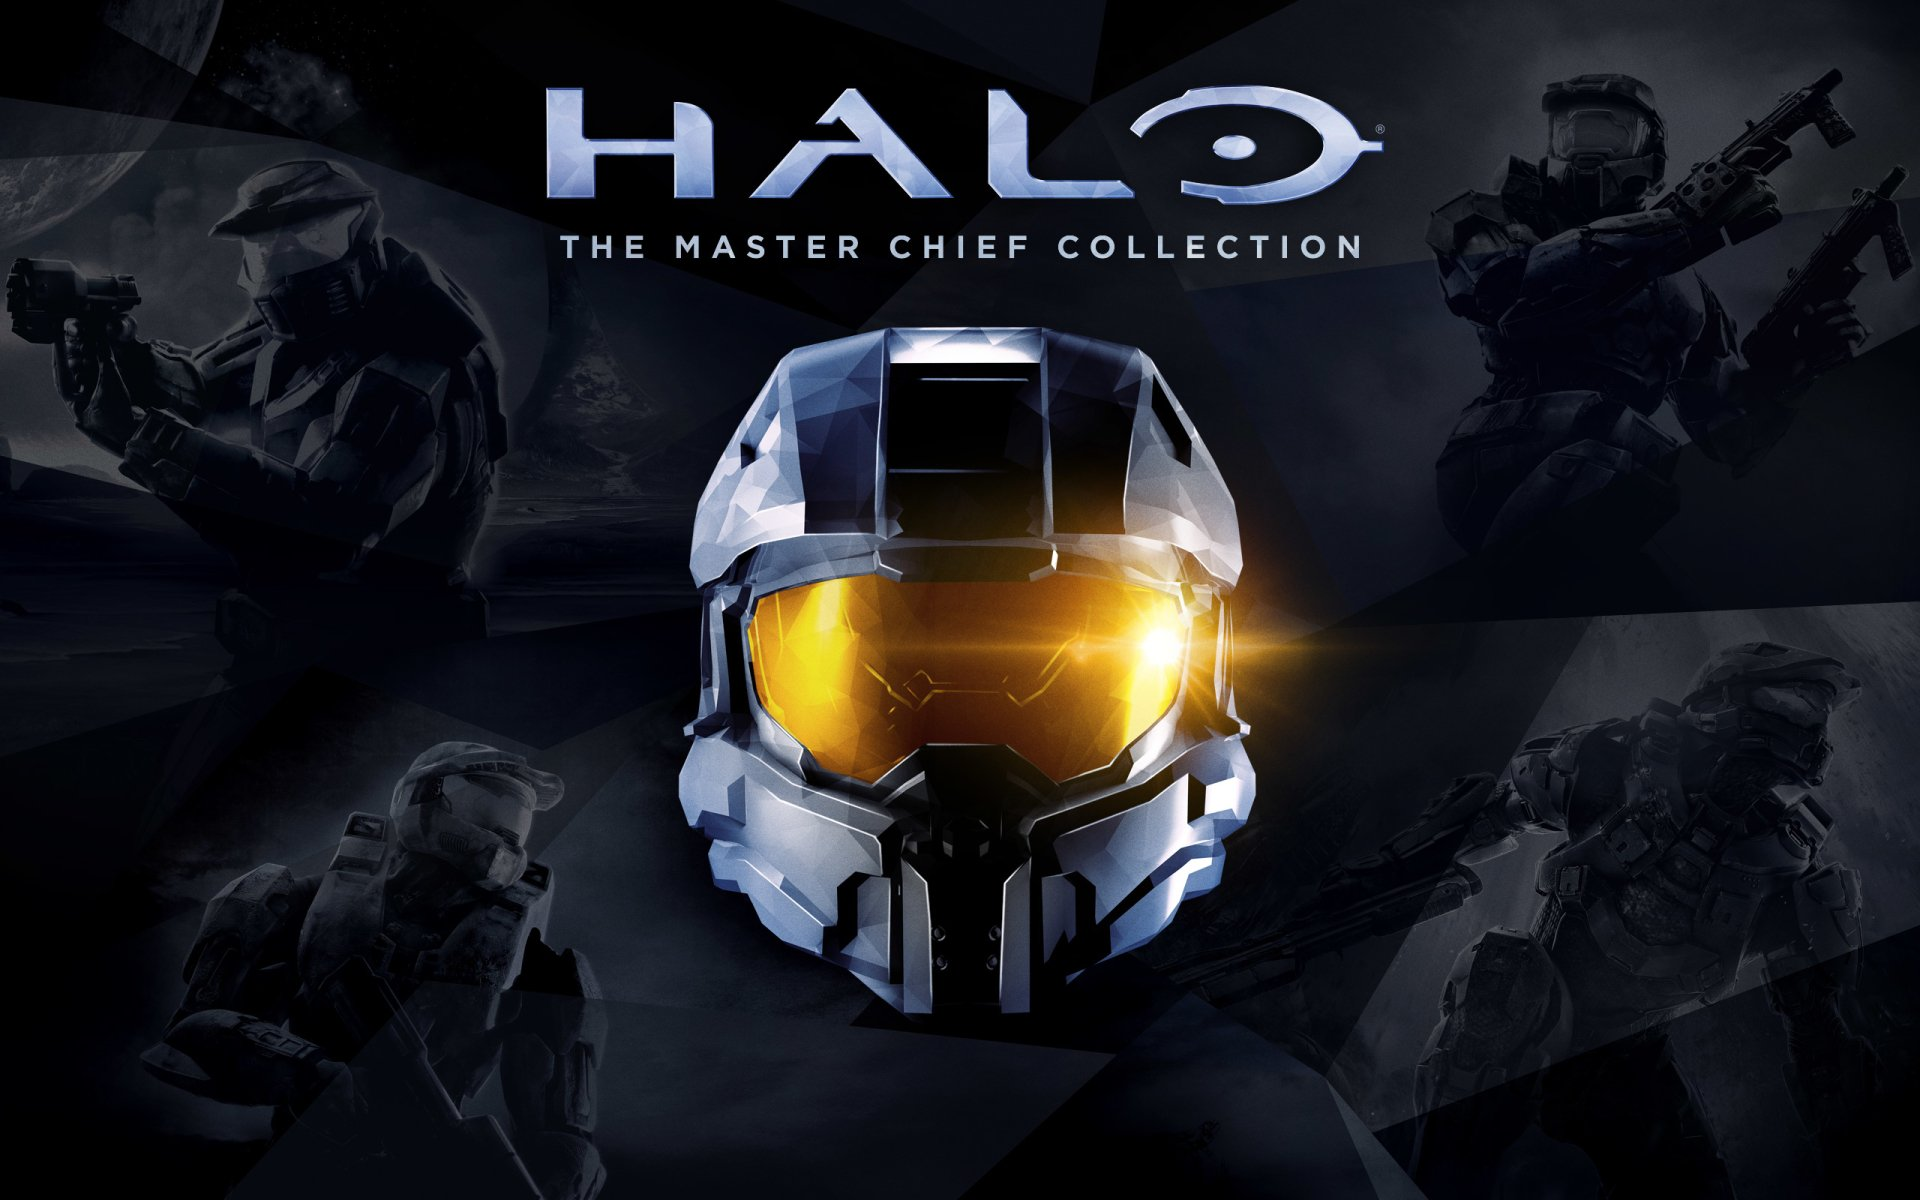 10 Halo The Master Chief Collection Hd Wallpapers Background Images